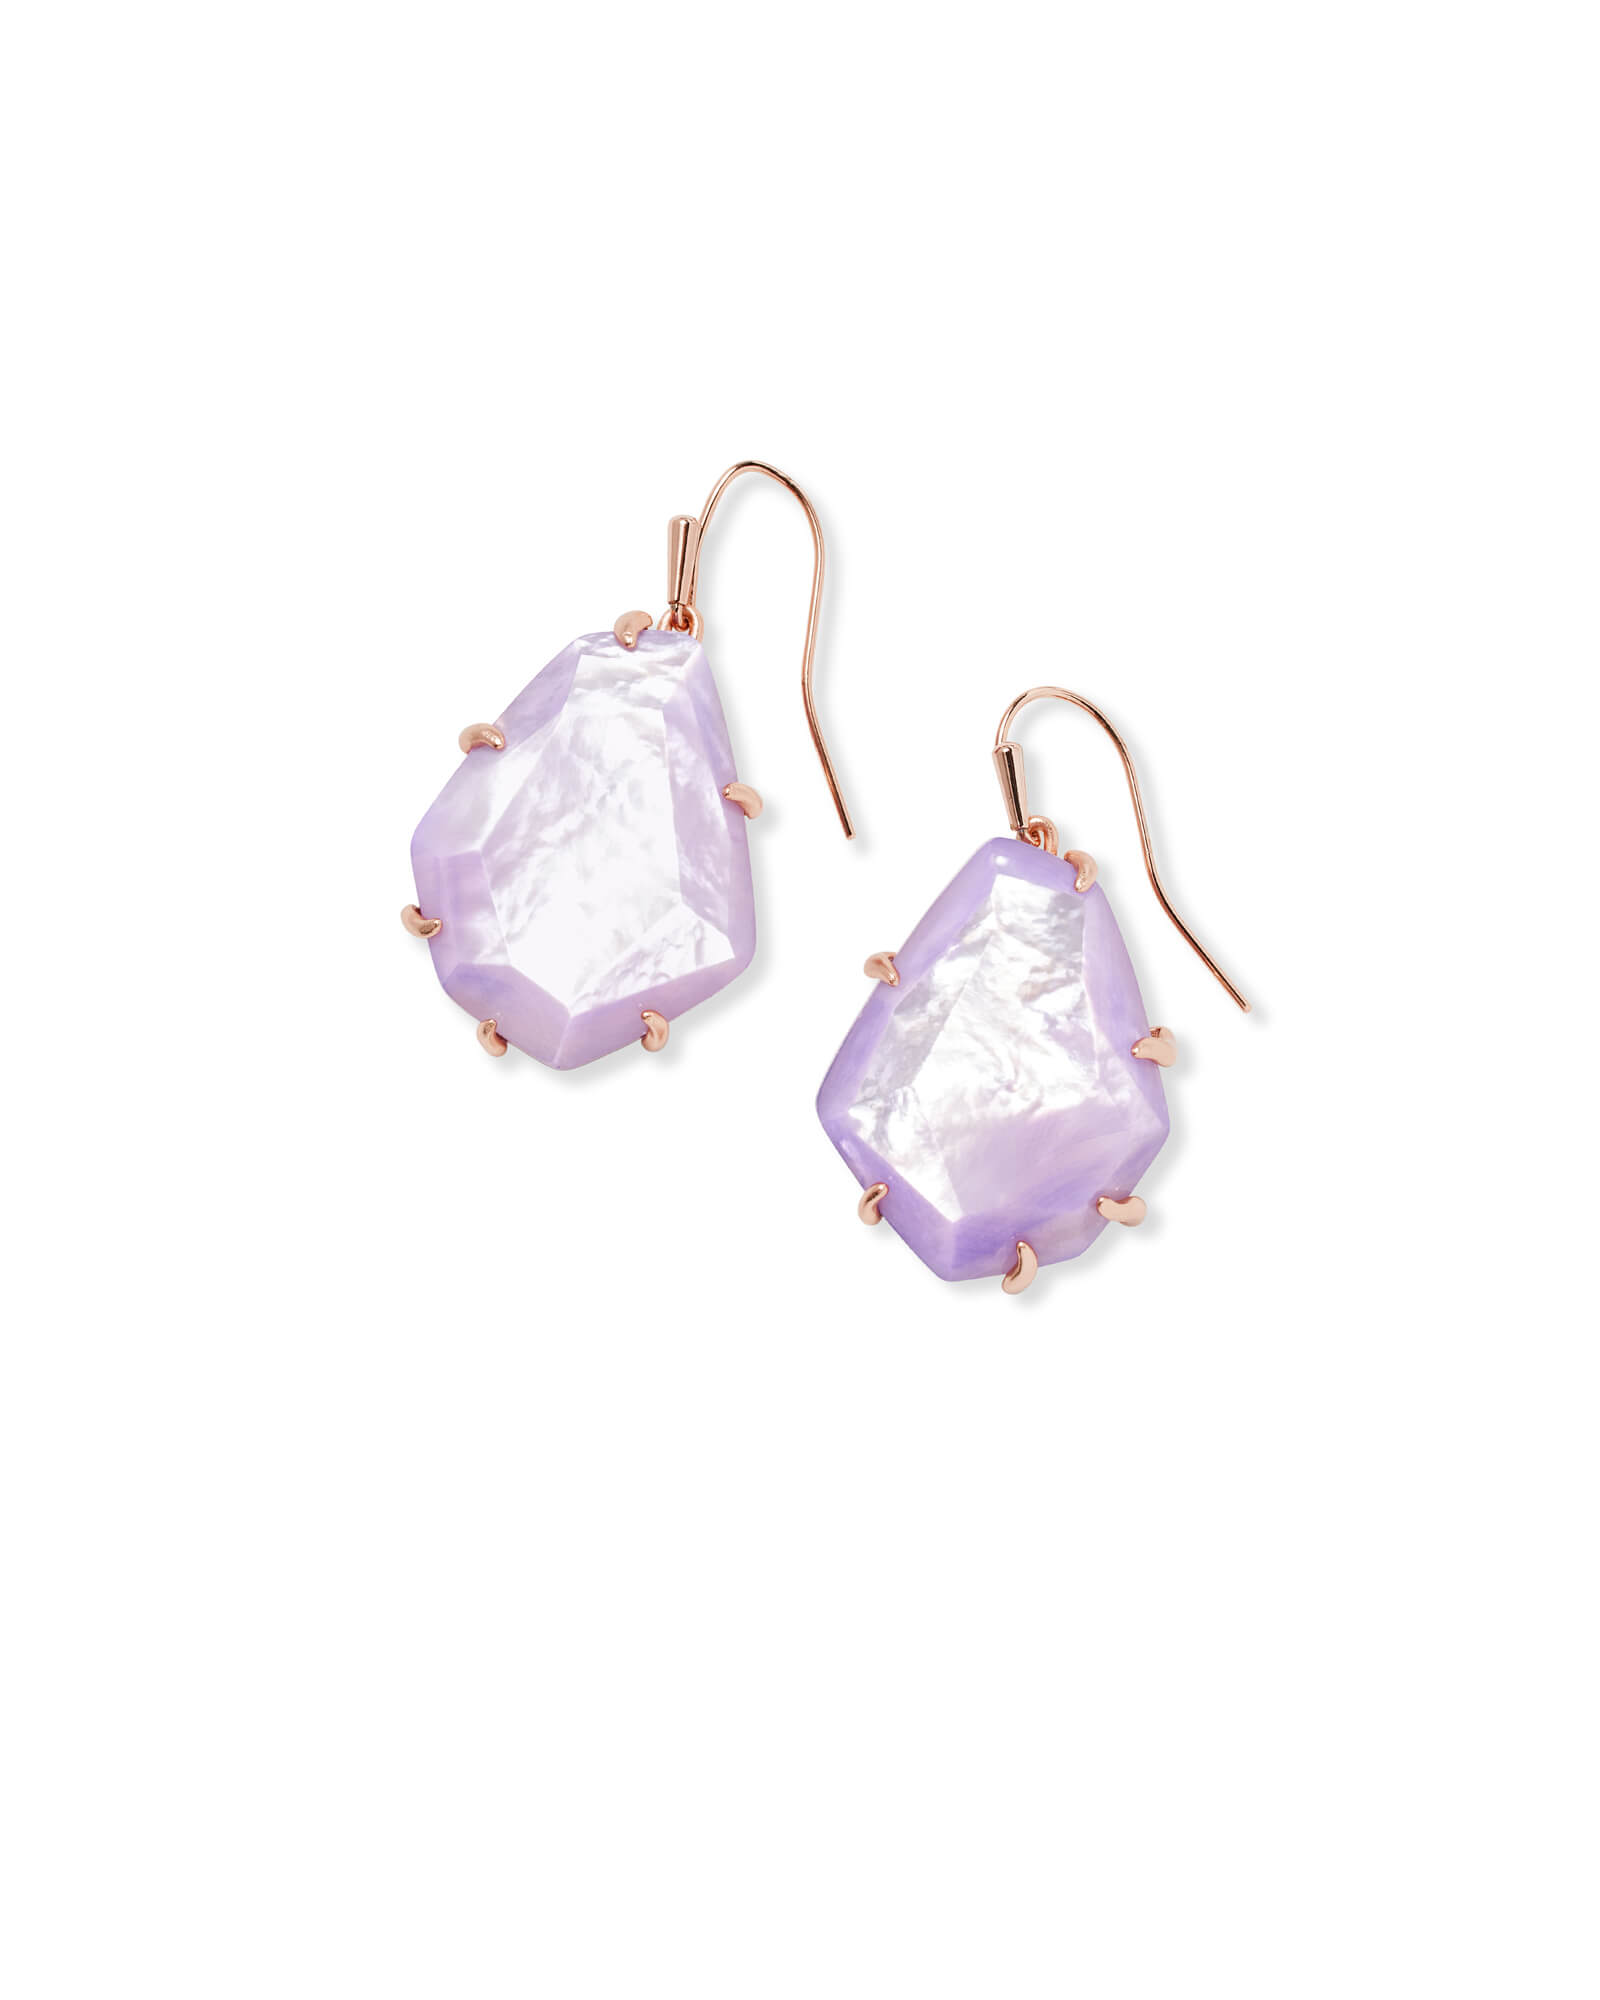 Rosenell Rose Gold Drop Earrings In Lilac Mother of Pearl